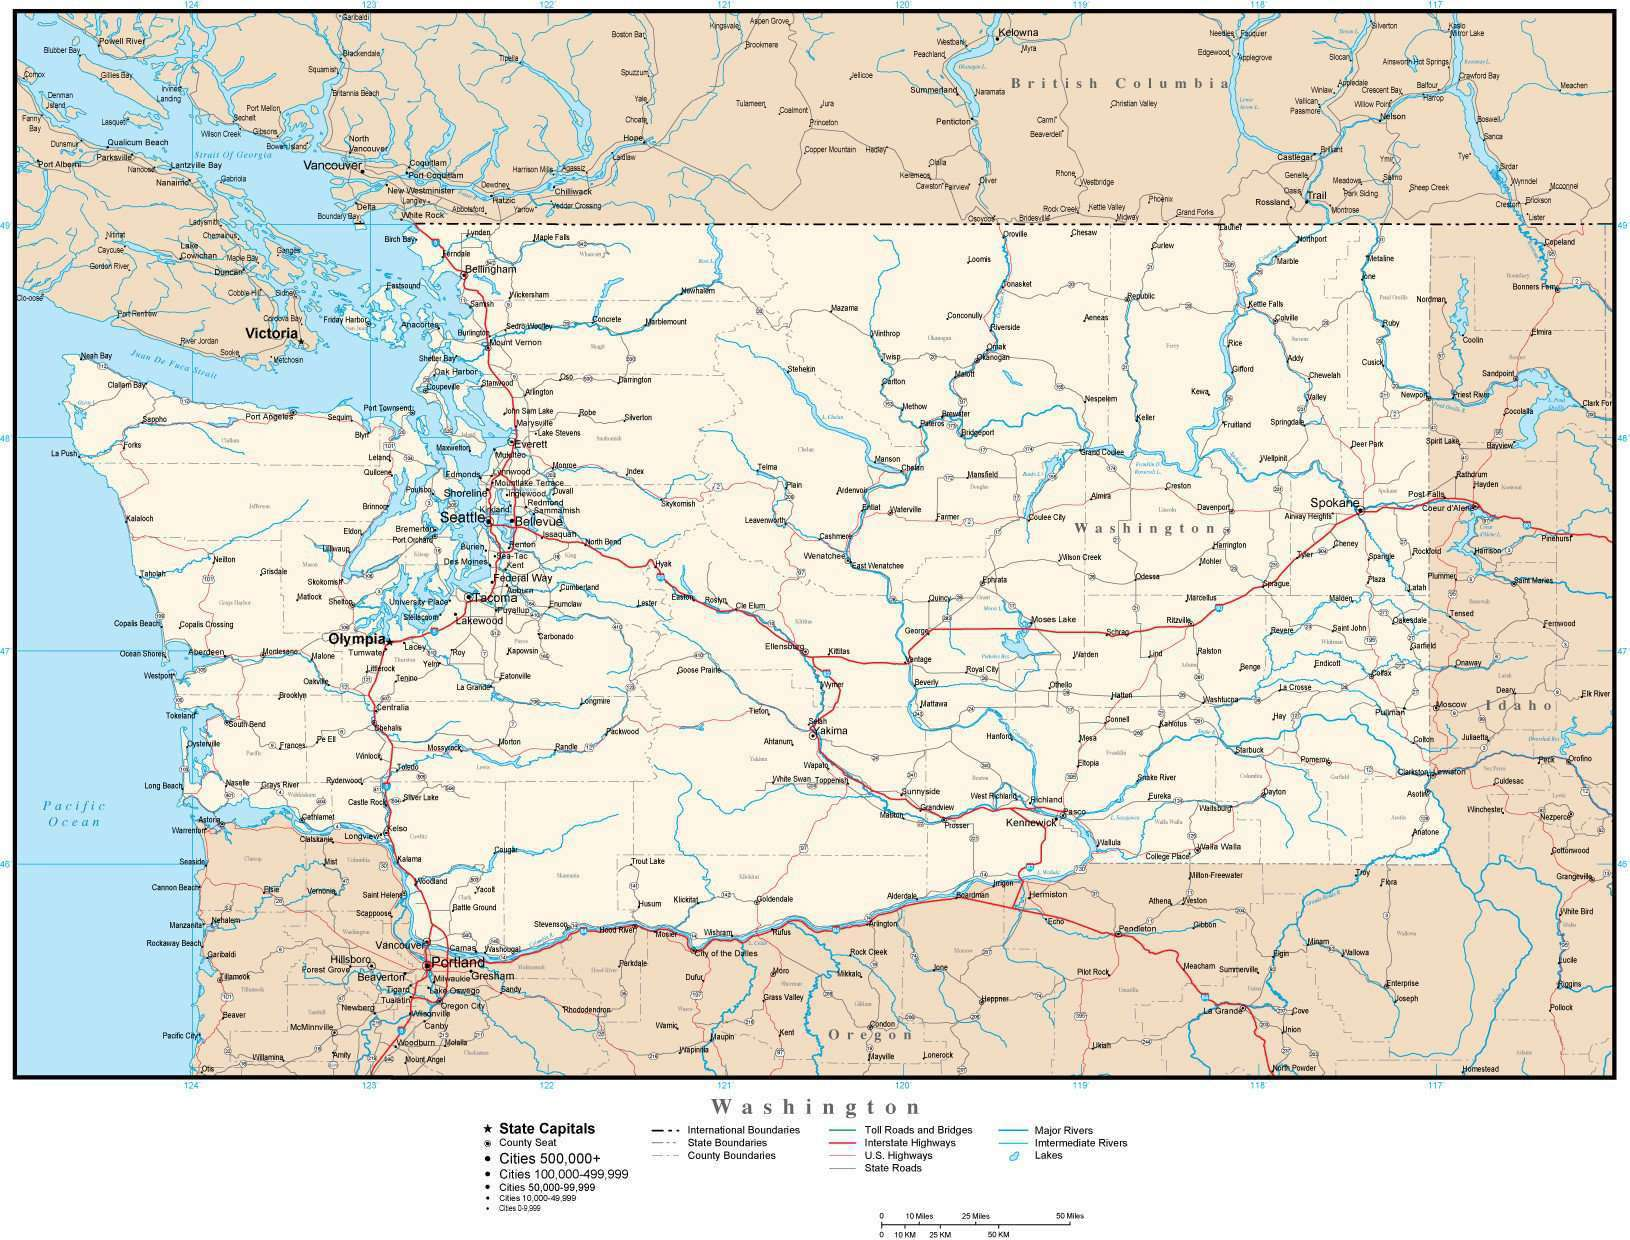 Picture of: Washington Terrain Map In Adobe Illustrator Vector Format